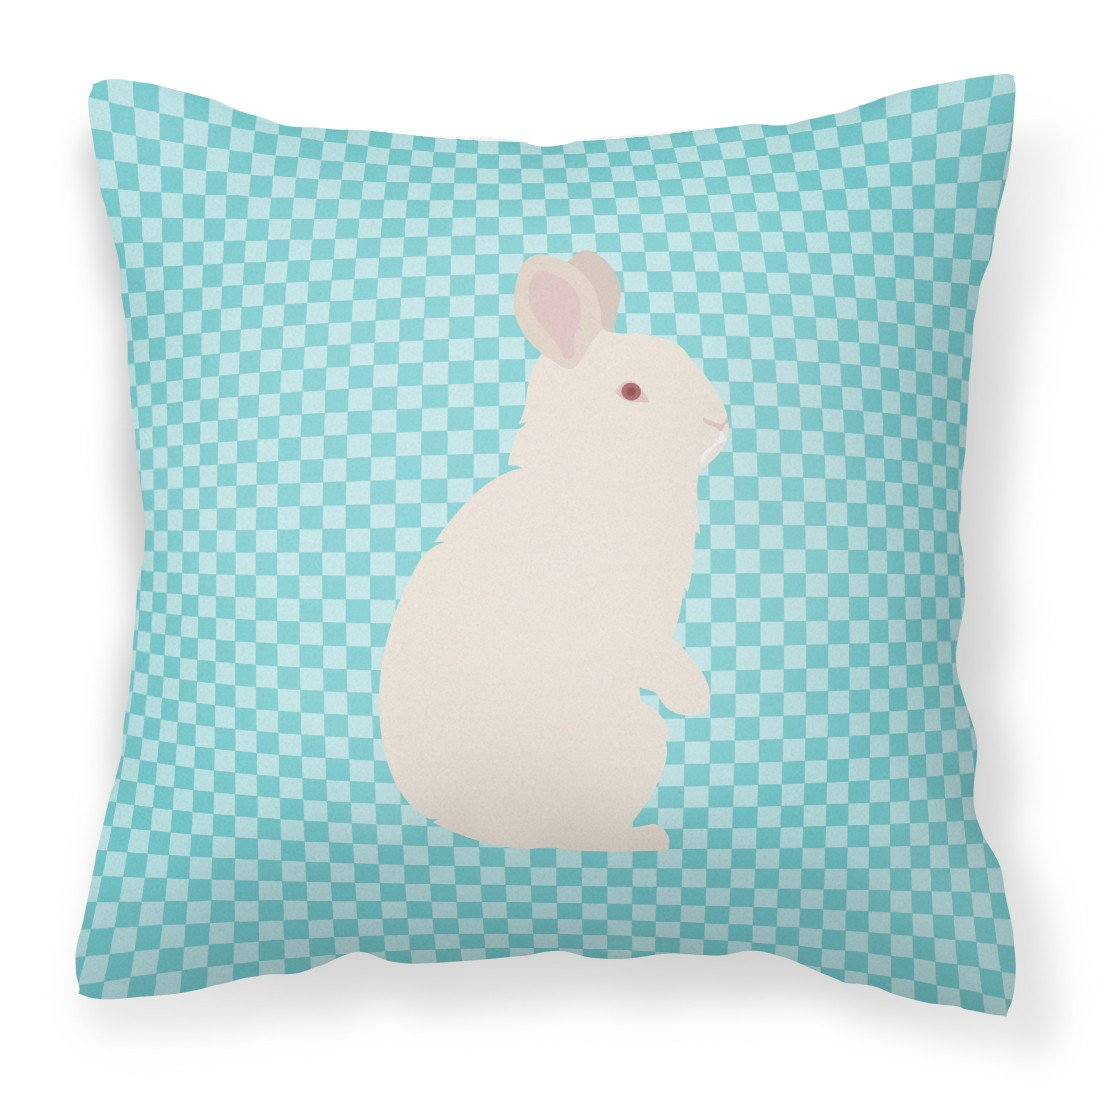 New Zealand White Rabbit Blue Check Fabric Decorative Pillow BB8139PW1818 by Caroline's Treasures